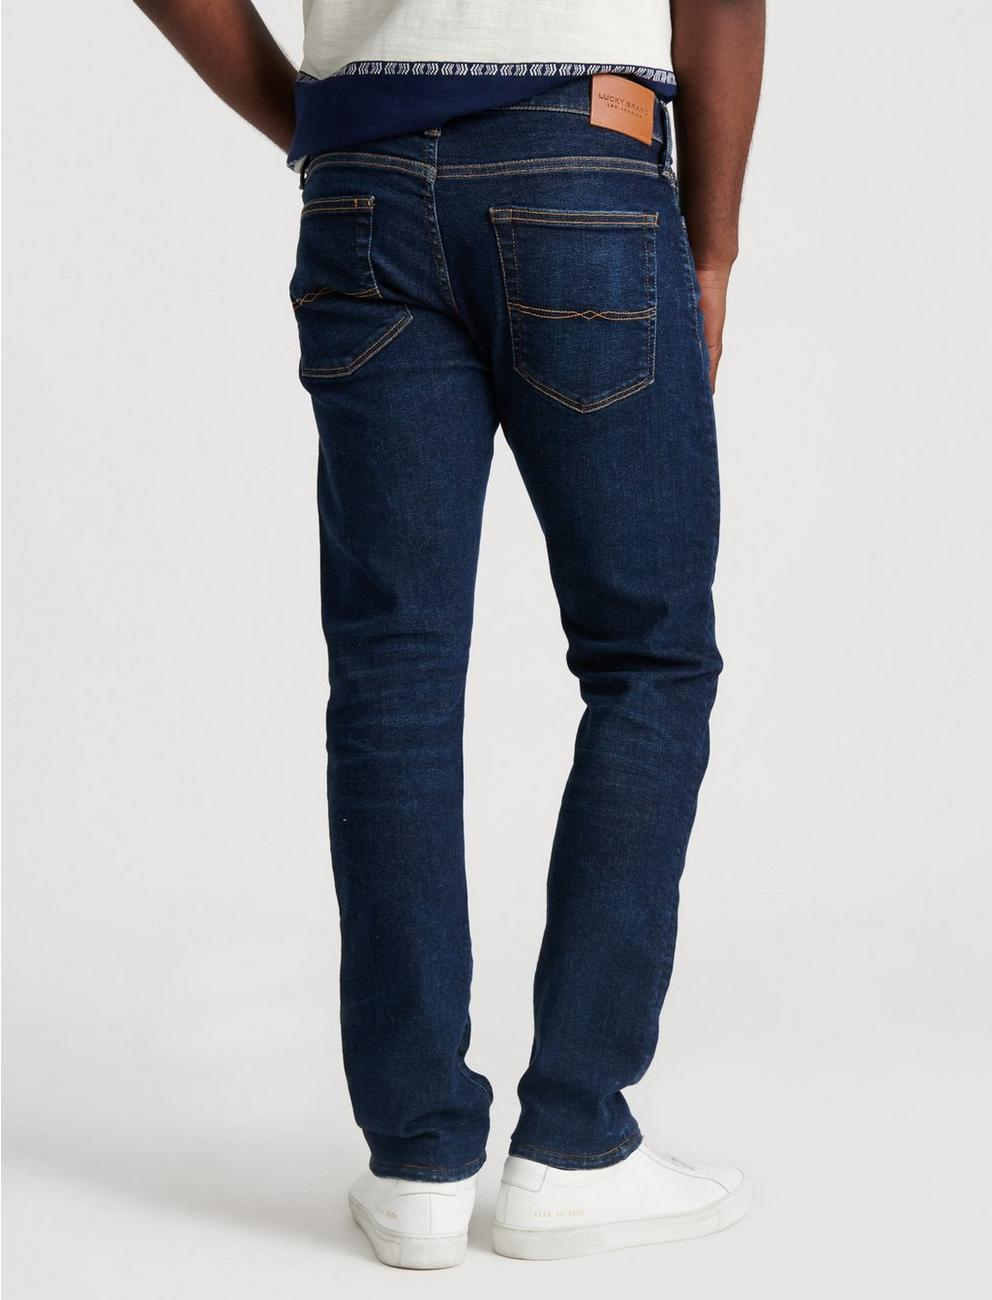 110 SLIM ADVANCED STRETCH JEAN, WRIGHT